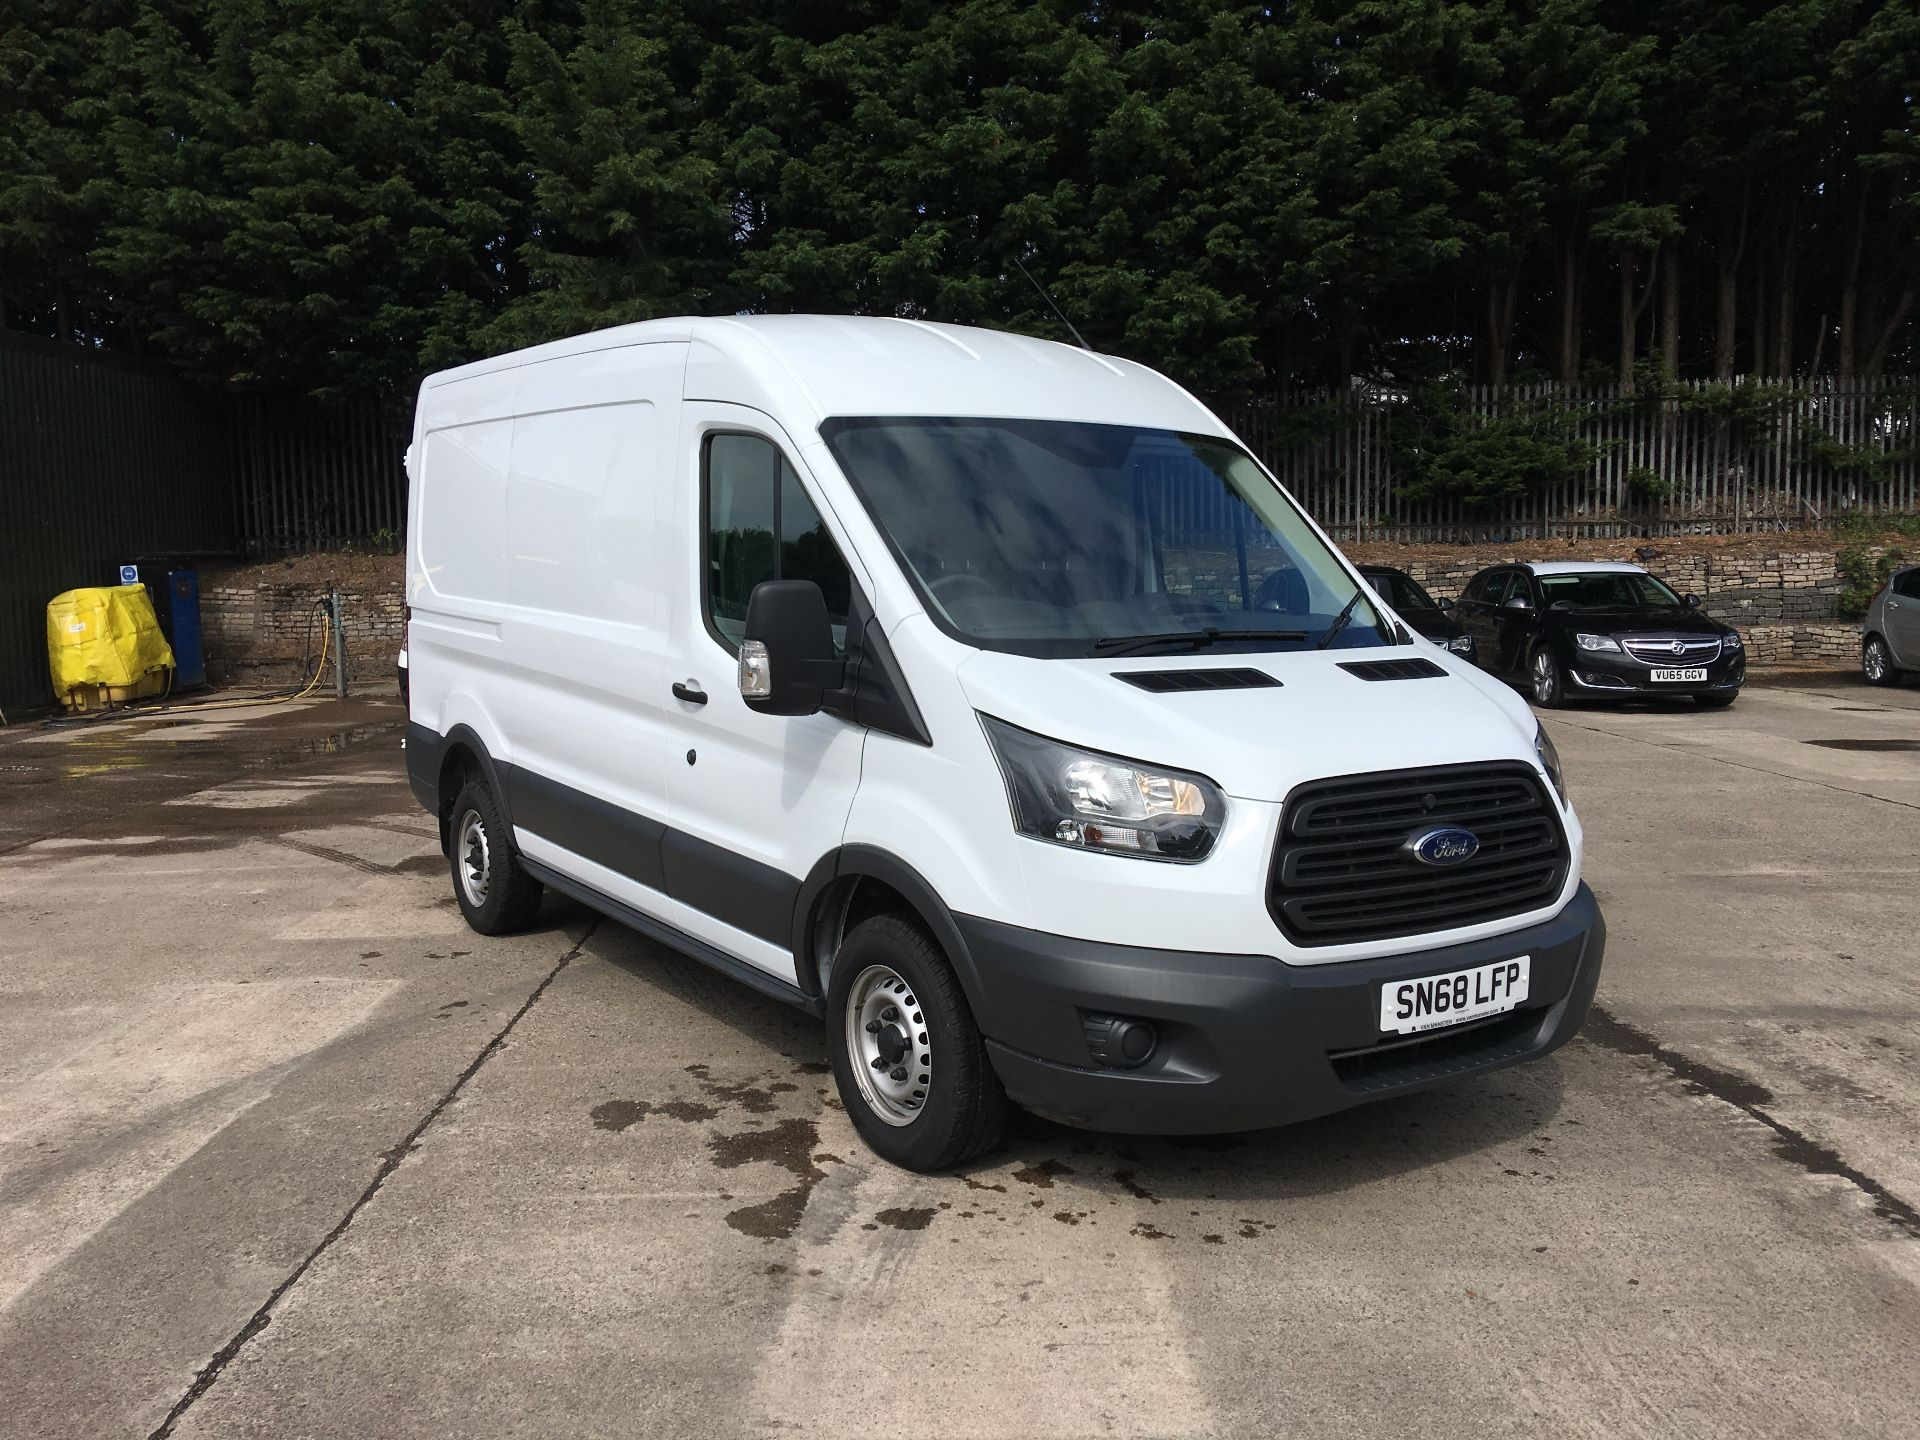 2018 Ford Transit 290 L2 DIESEL FWD 2.0 TDCI 105PS HIGH ROOF EURO 6 (SN68LFP)